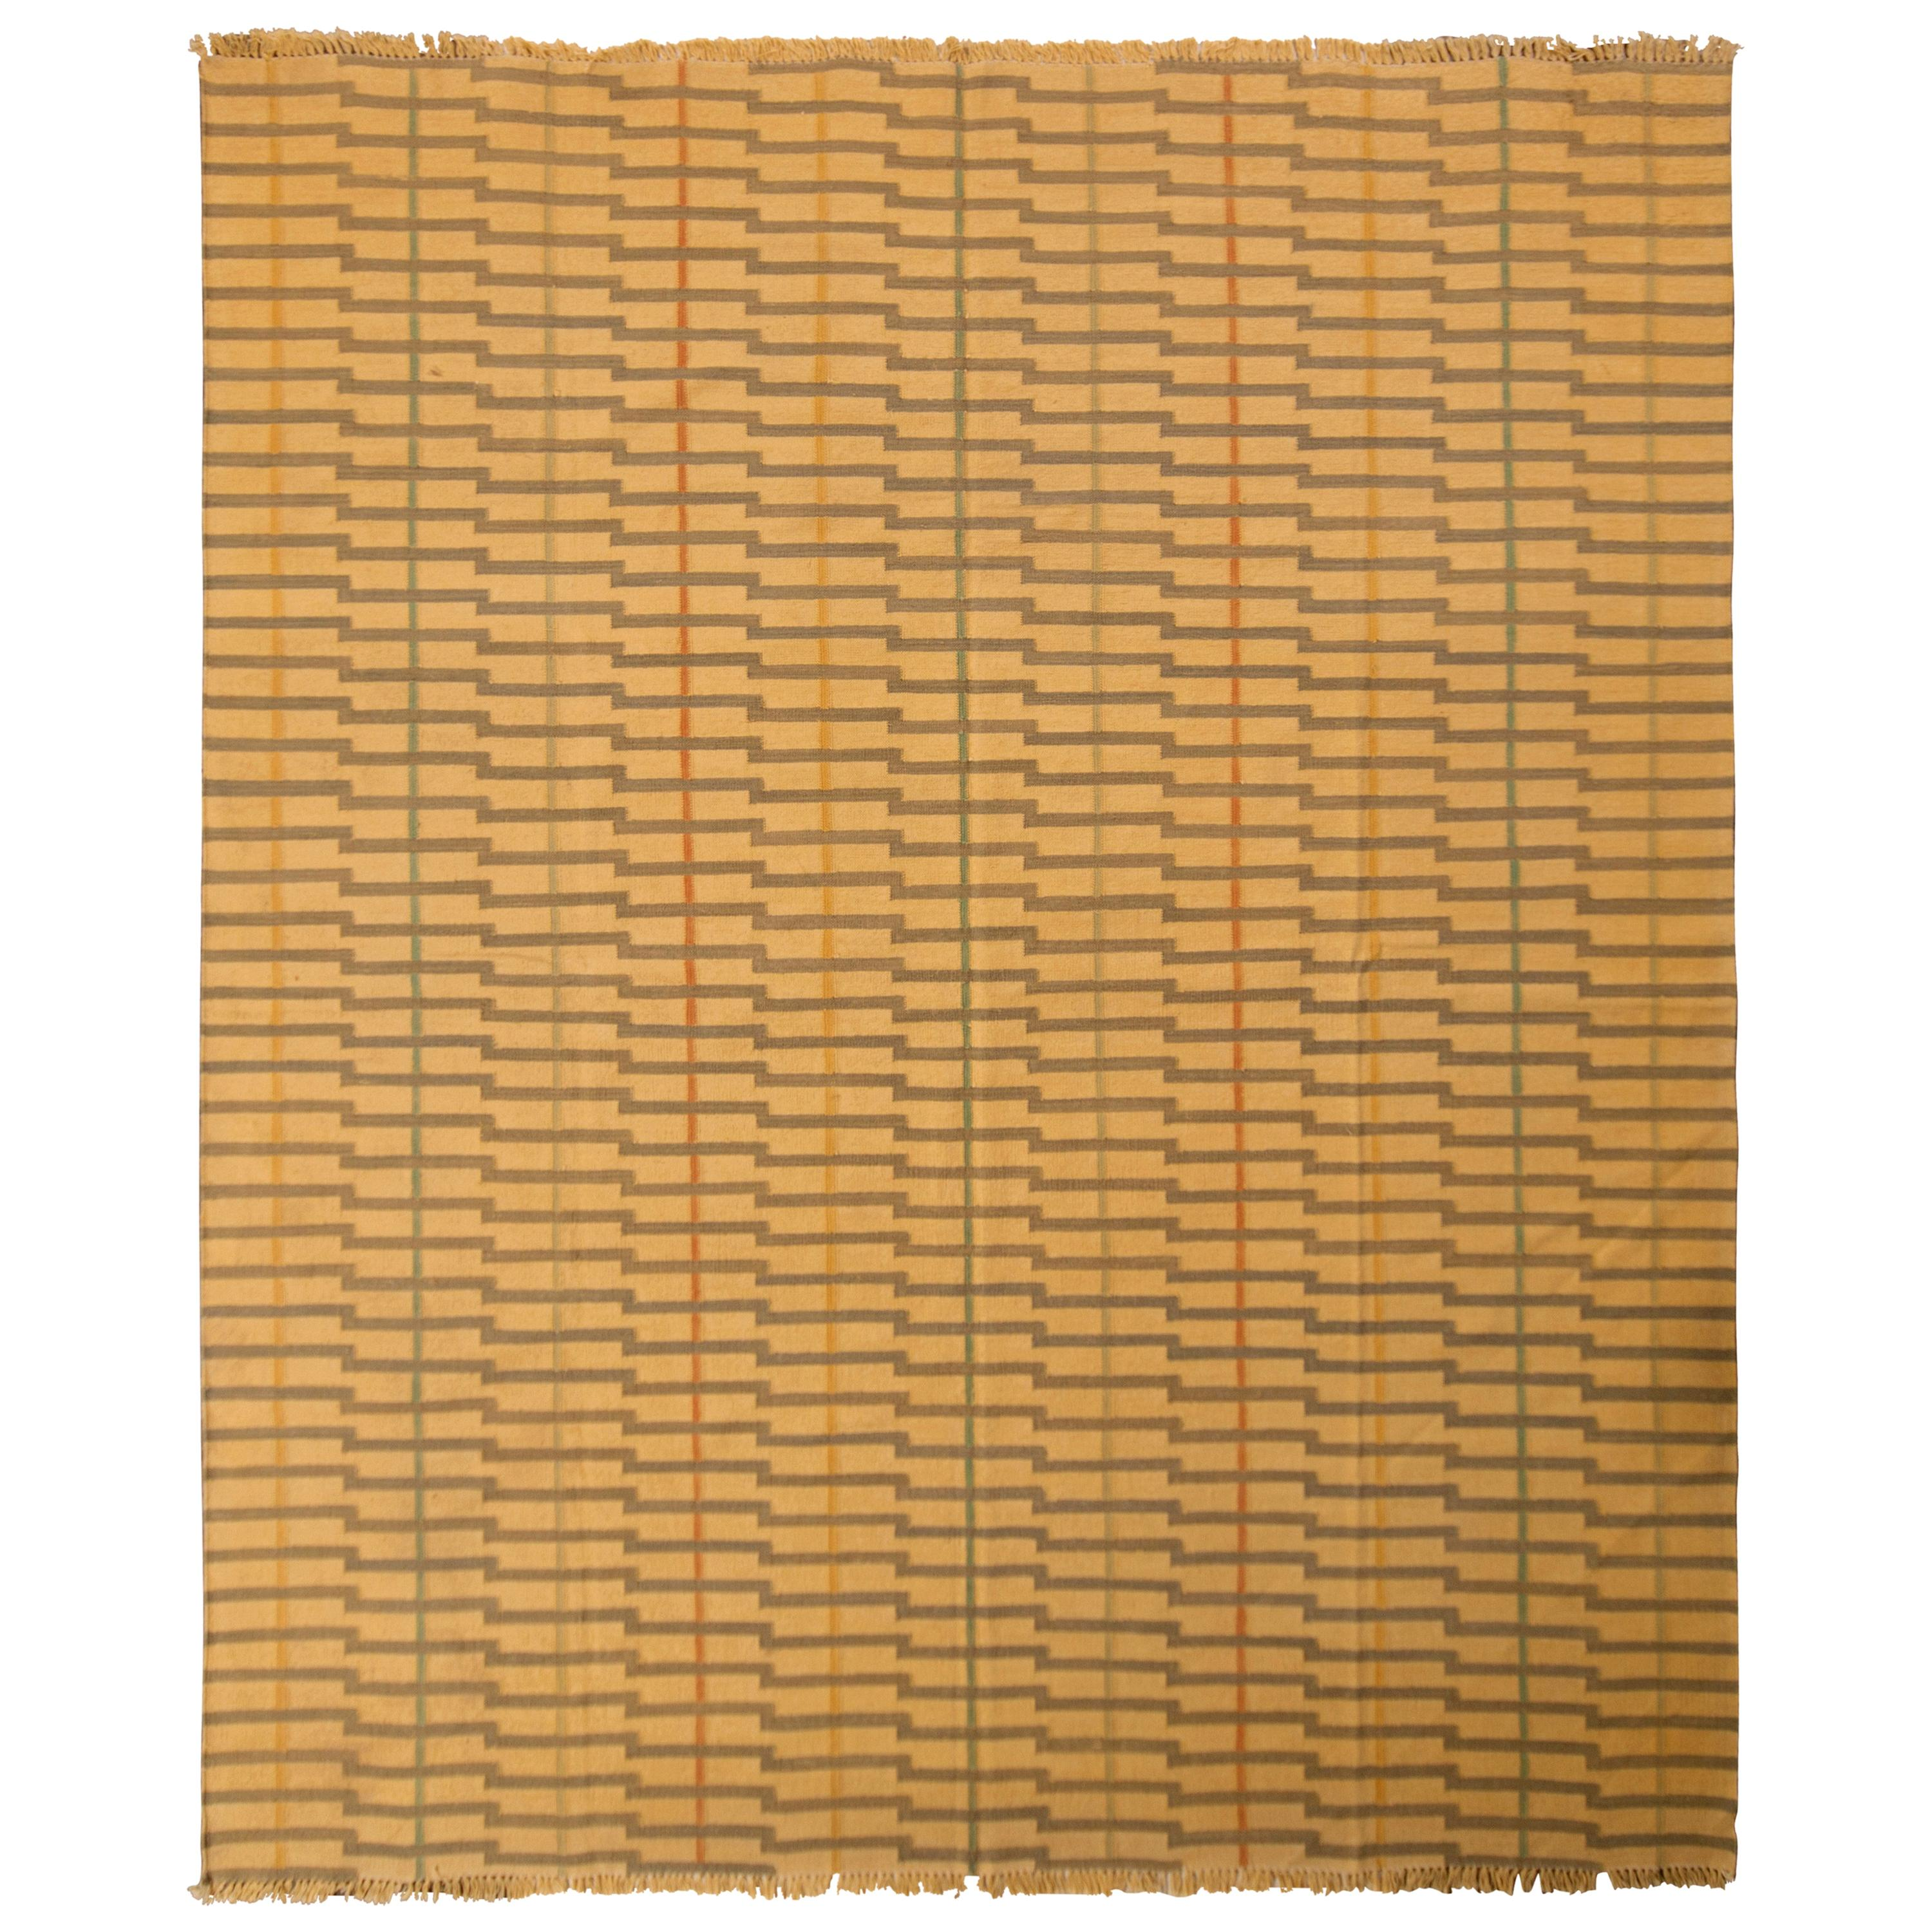 Rug & Kilim's Contemporary Striped Flat-Weave Beige Brown Pattern